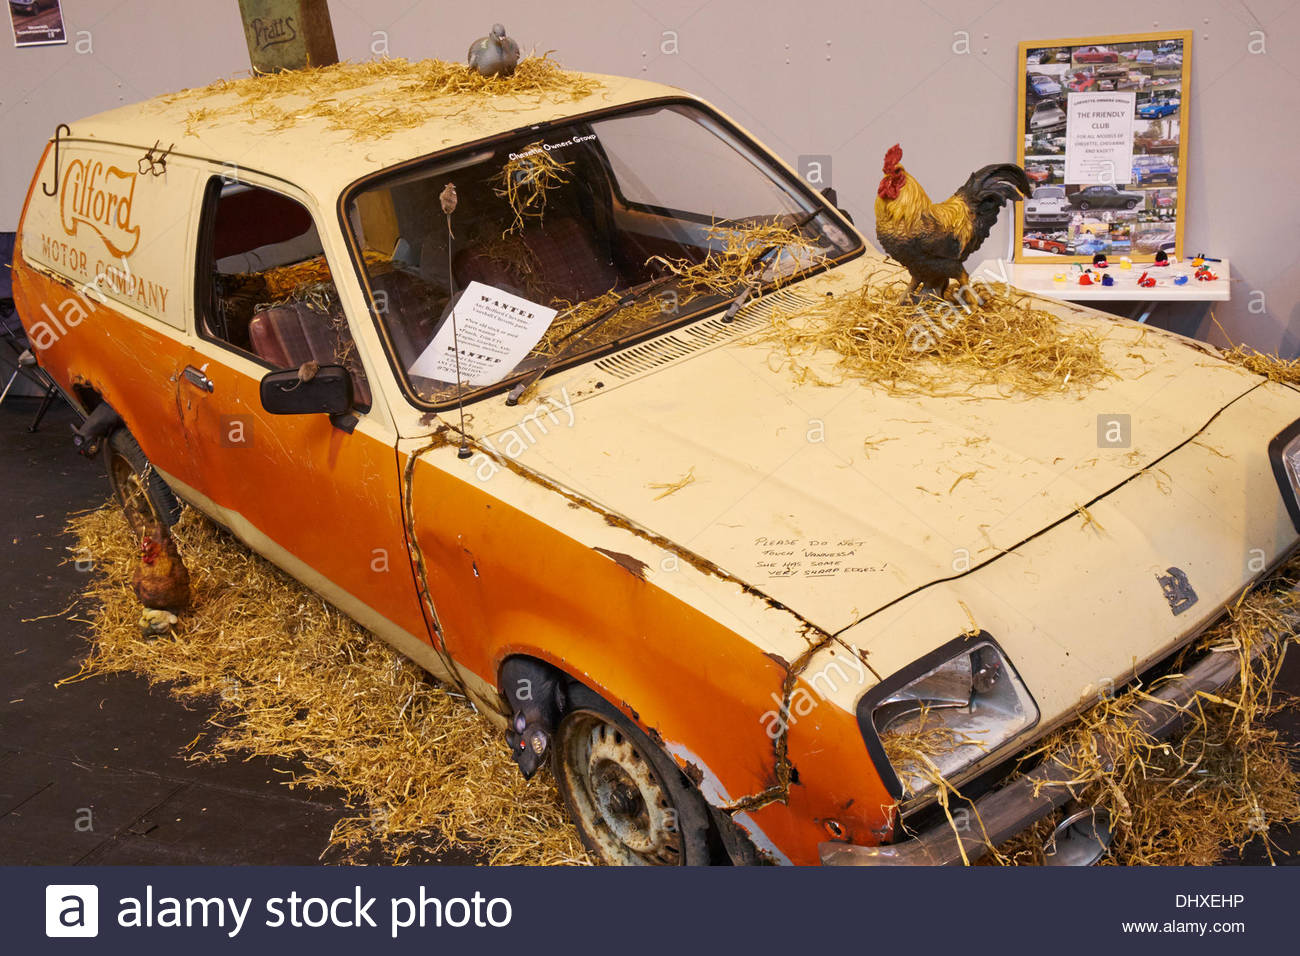 The Inevitable Barn Find On Display Bedford Chevanne Based Vauxhall Chevette Awaiting Restoration Credit M Dash Alamy Live News